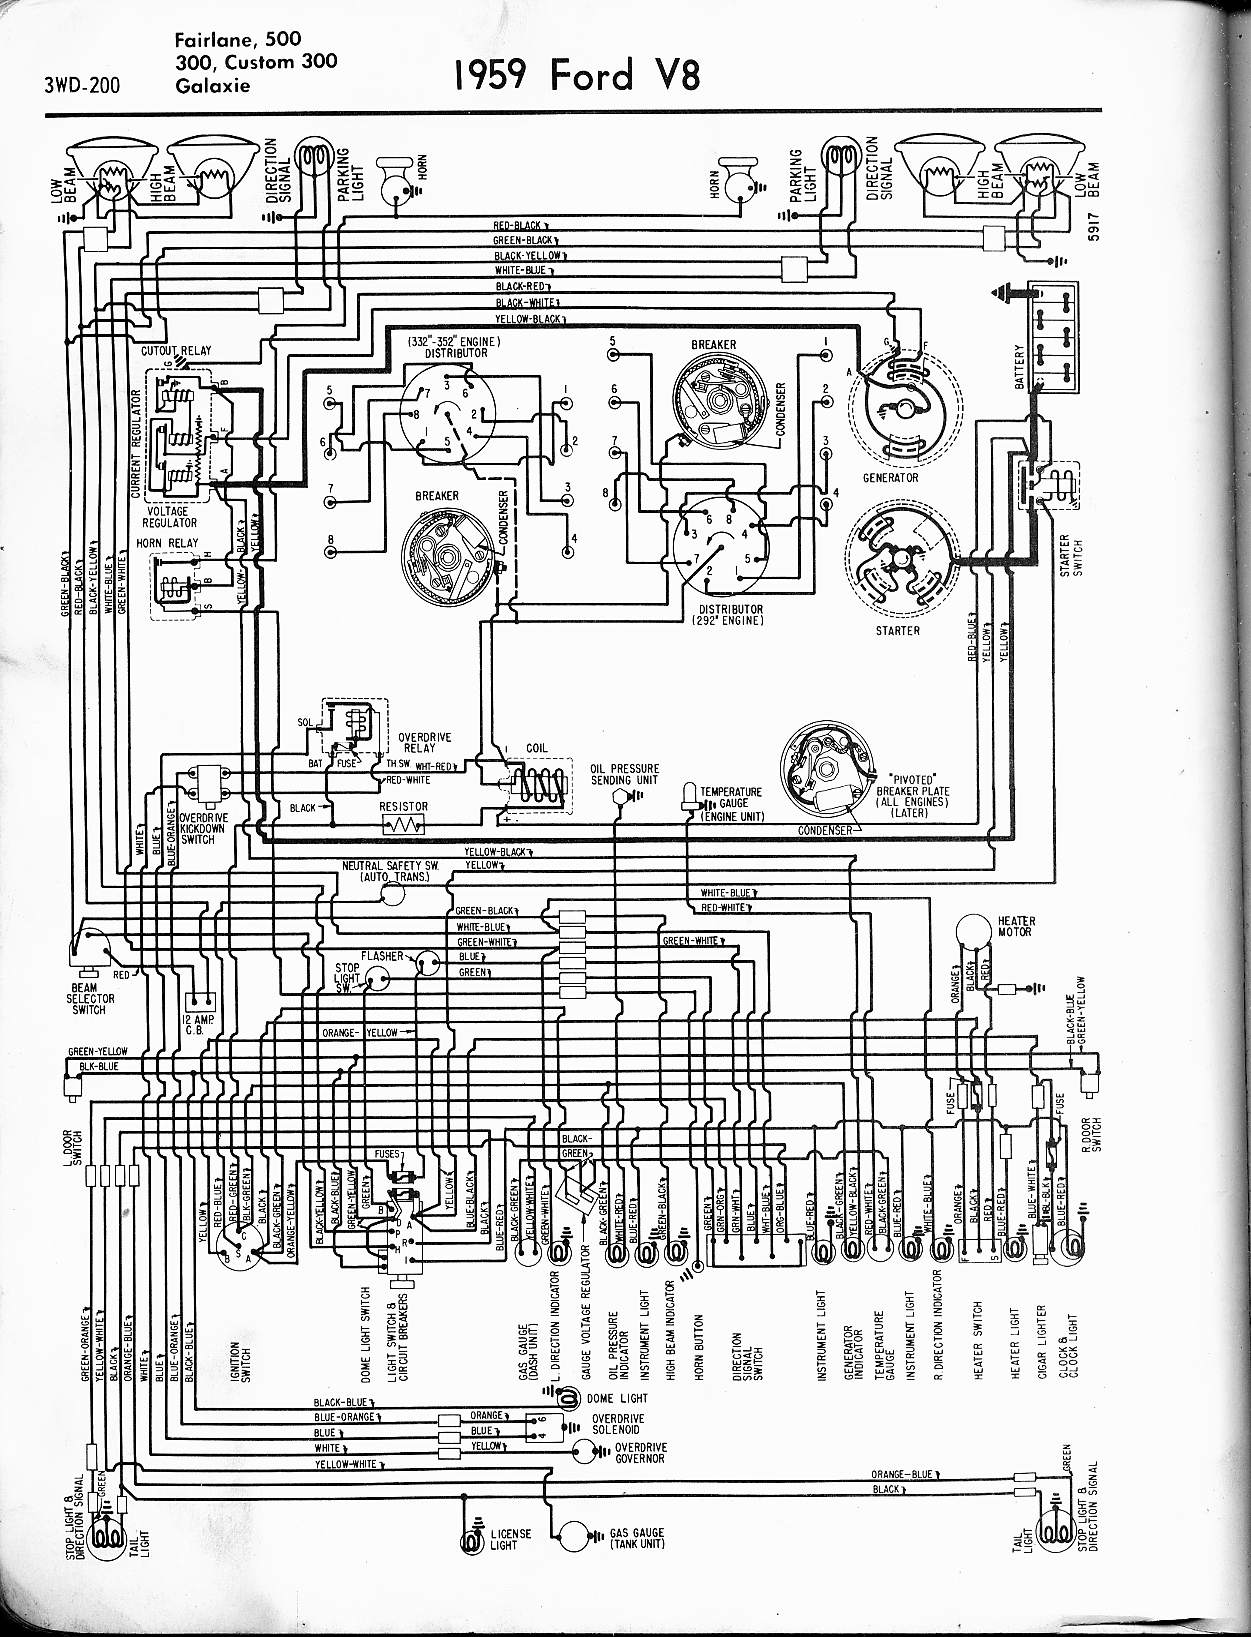 1956 Cadillac Wiring Diagram Simple Wiring Diagram 1956 Chevrolet Wiring  Diagram 1956 Cadillac Wiring Diagram